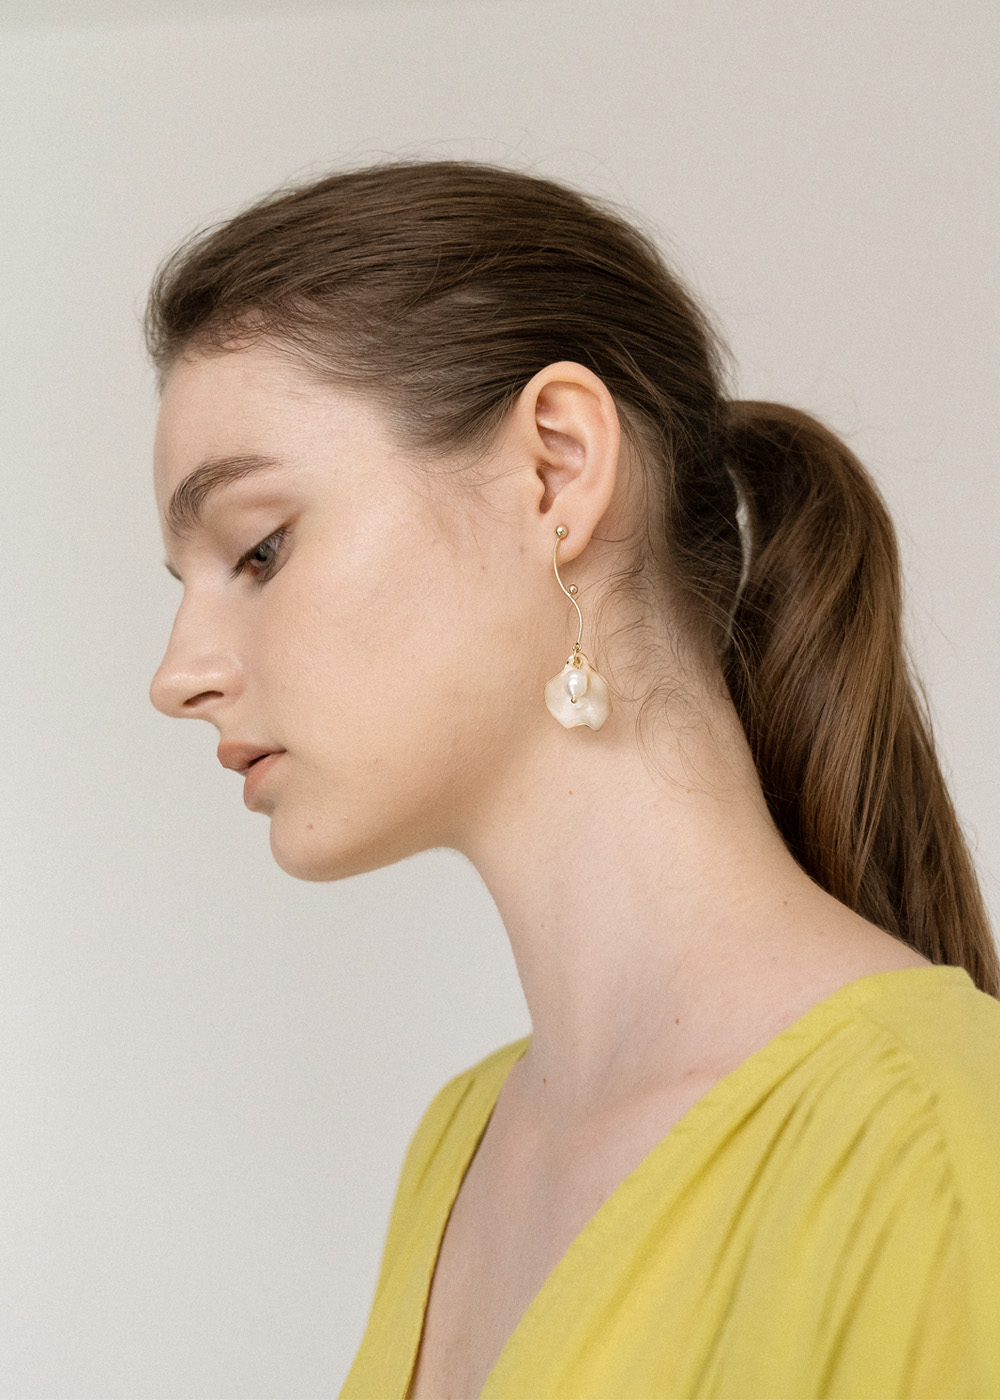 3RD-GENTLE-EARRING 38